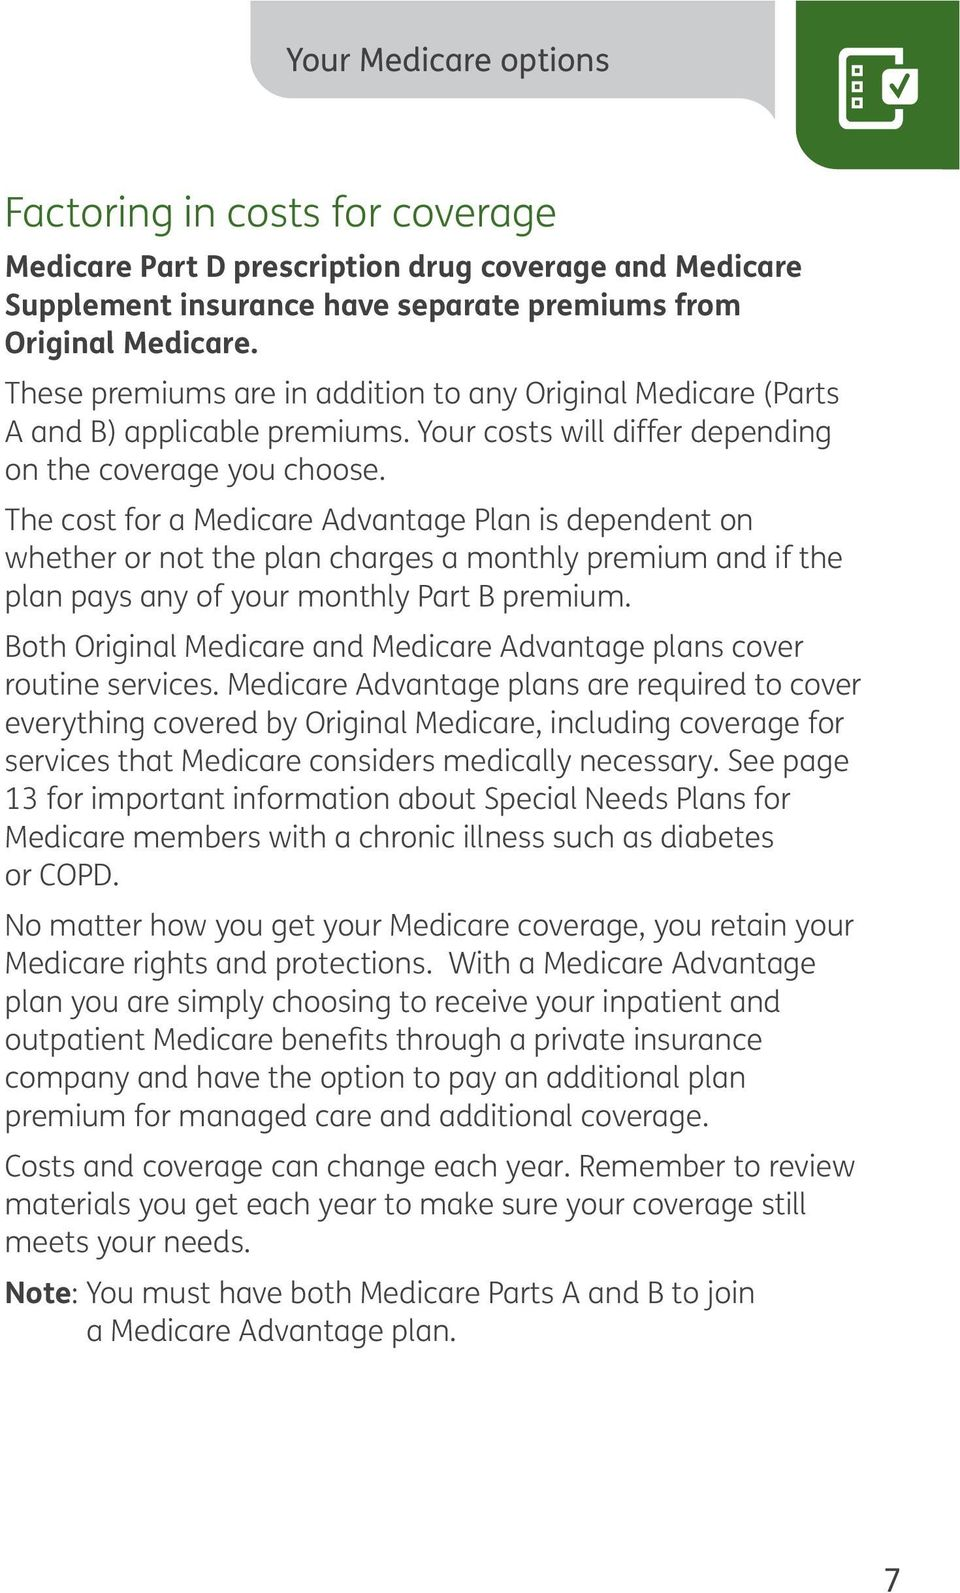 The cost for a Medicare Advantage Plan is dependent on whether or not the plan charges a monthly premium and if the plan pays any of your monthly Part B premium.